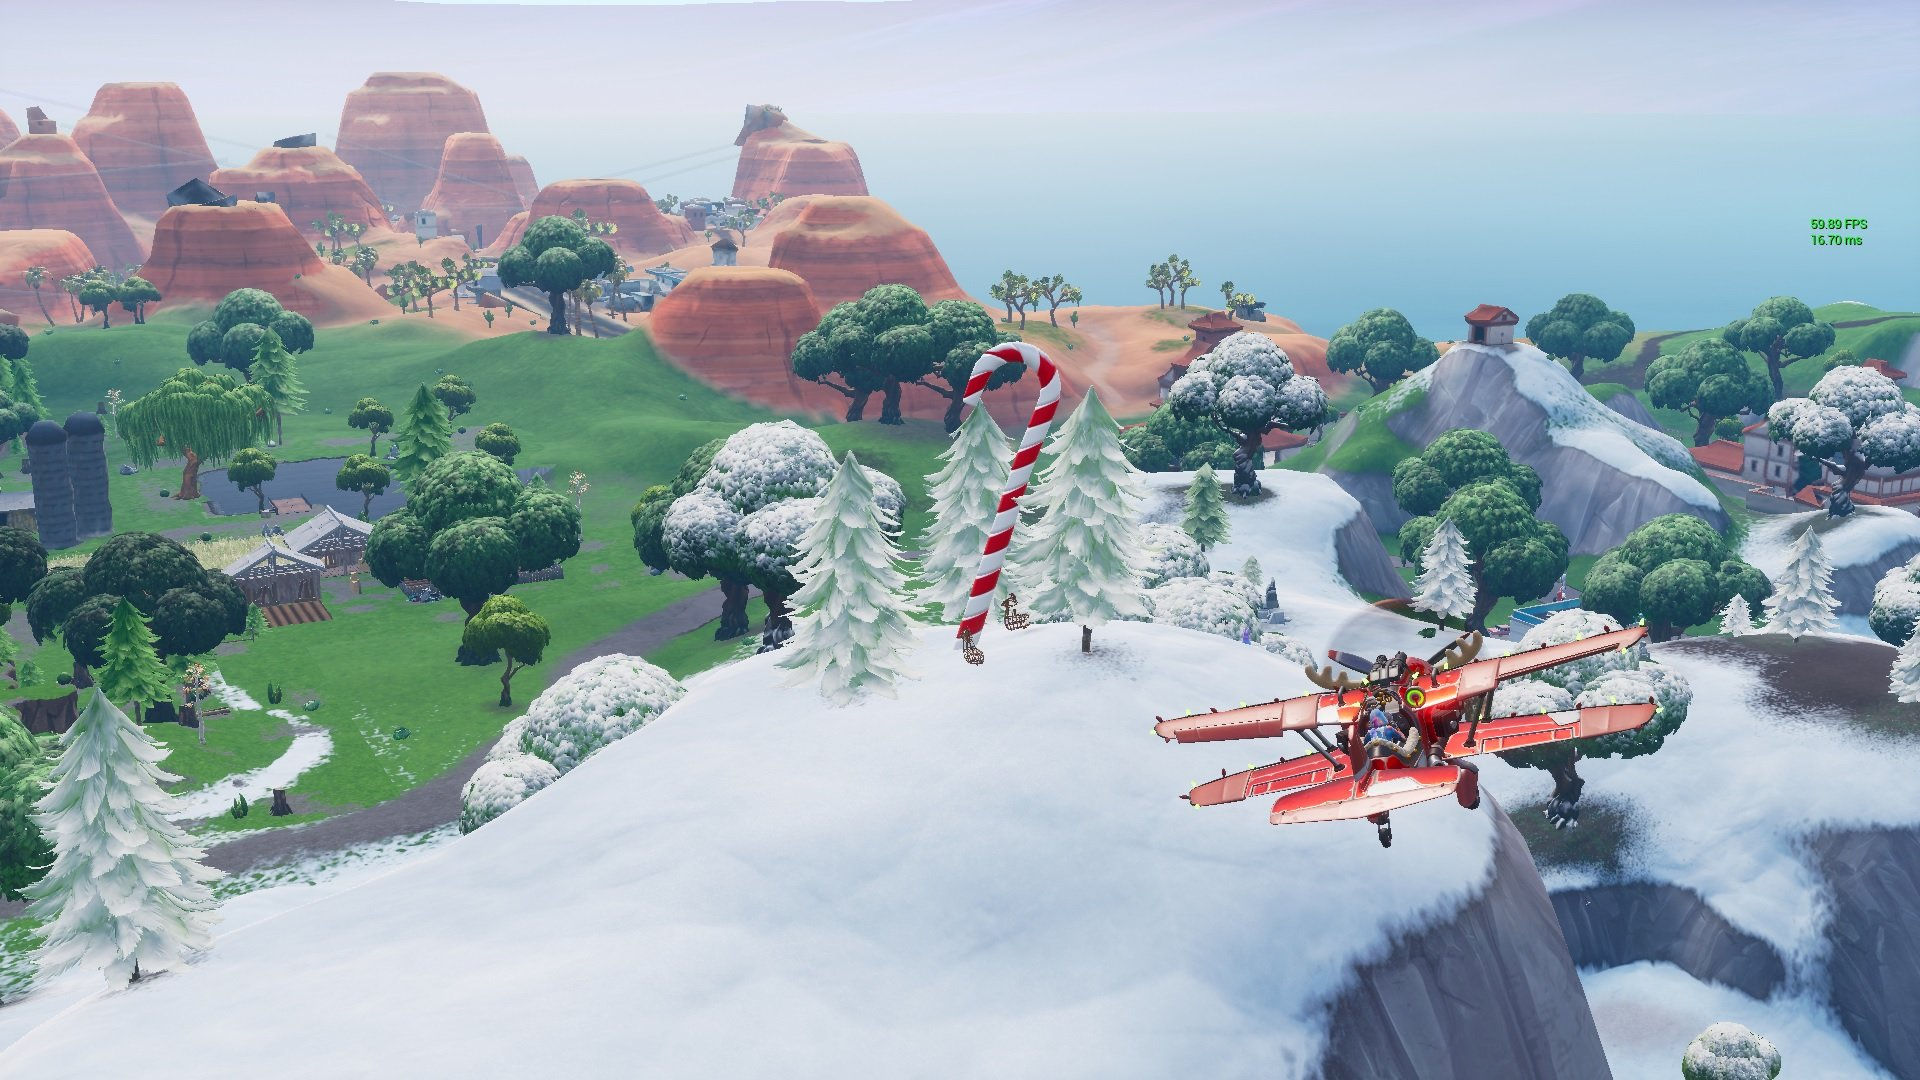 Days of Fortnite Day 2 Challenge - Visit Giant Candy Canes Locations